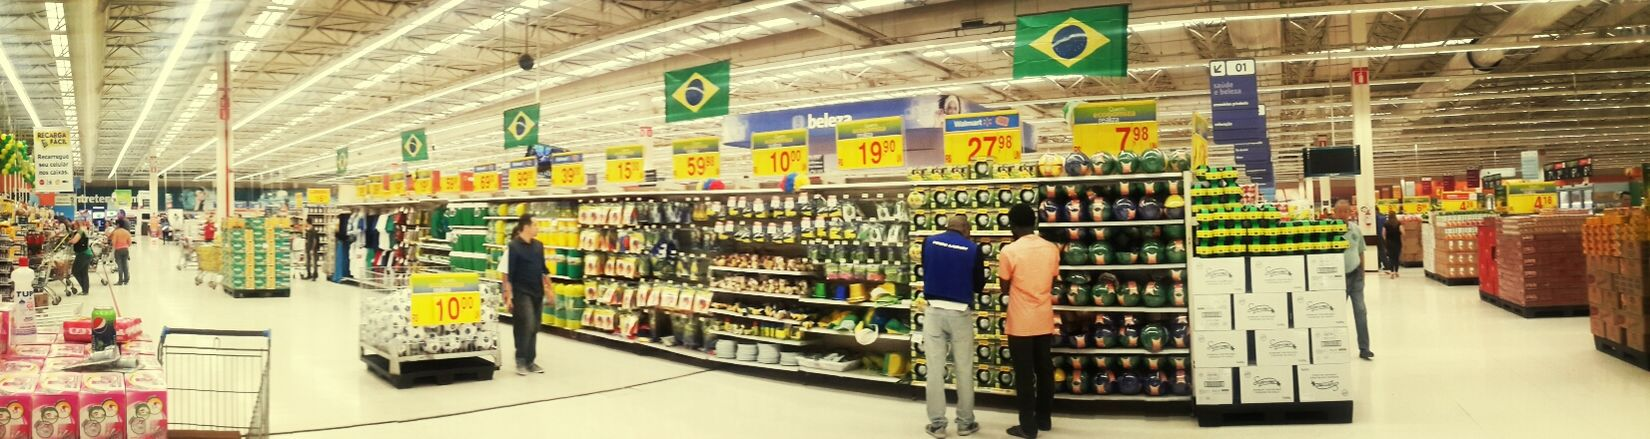 Walmart repping the colors of Brasil. We Are Onefootball Brazil 2014 World Cup Worldcup2014 Copadomundo